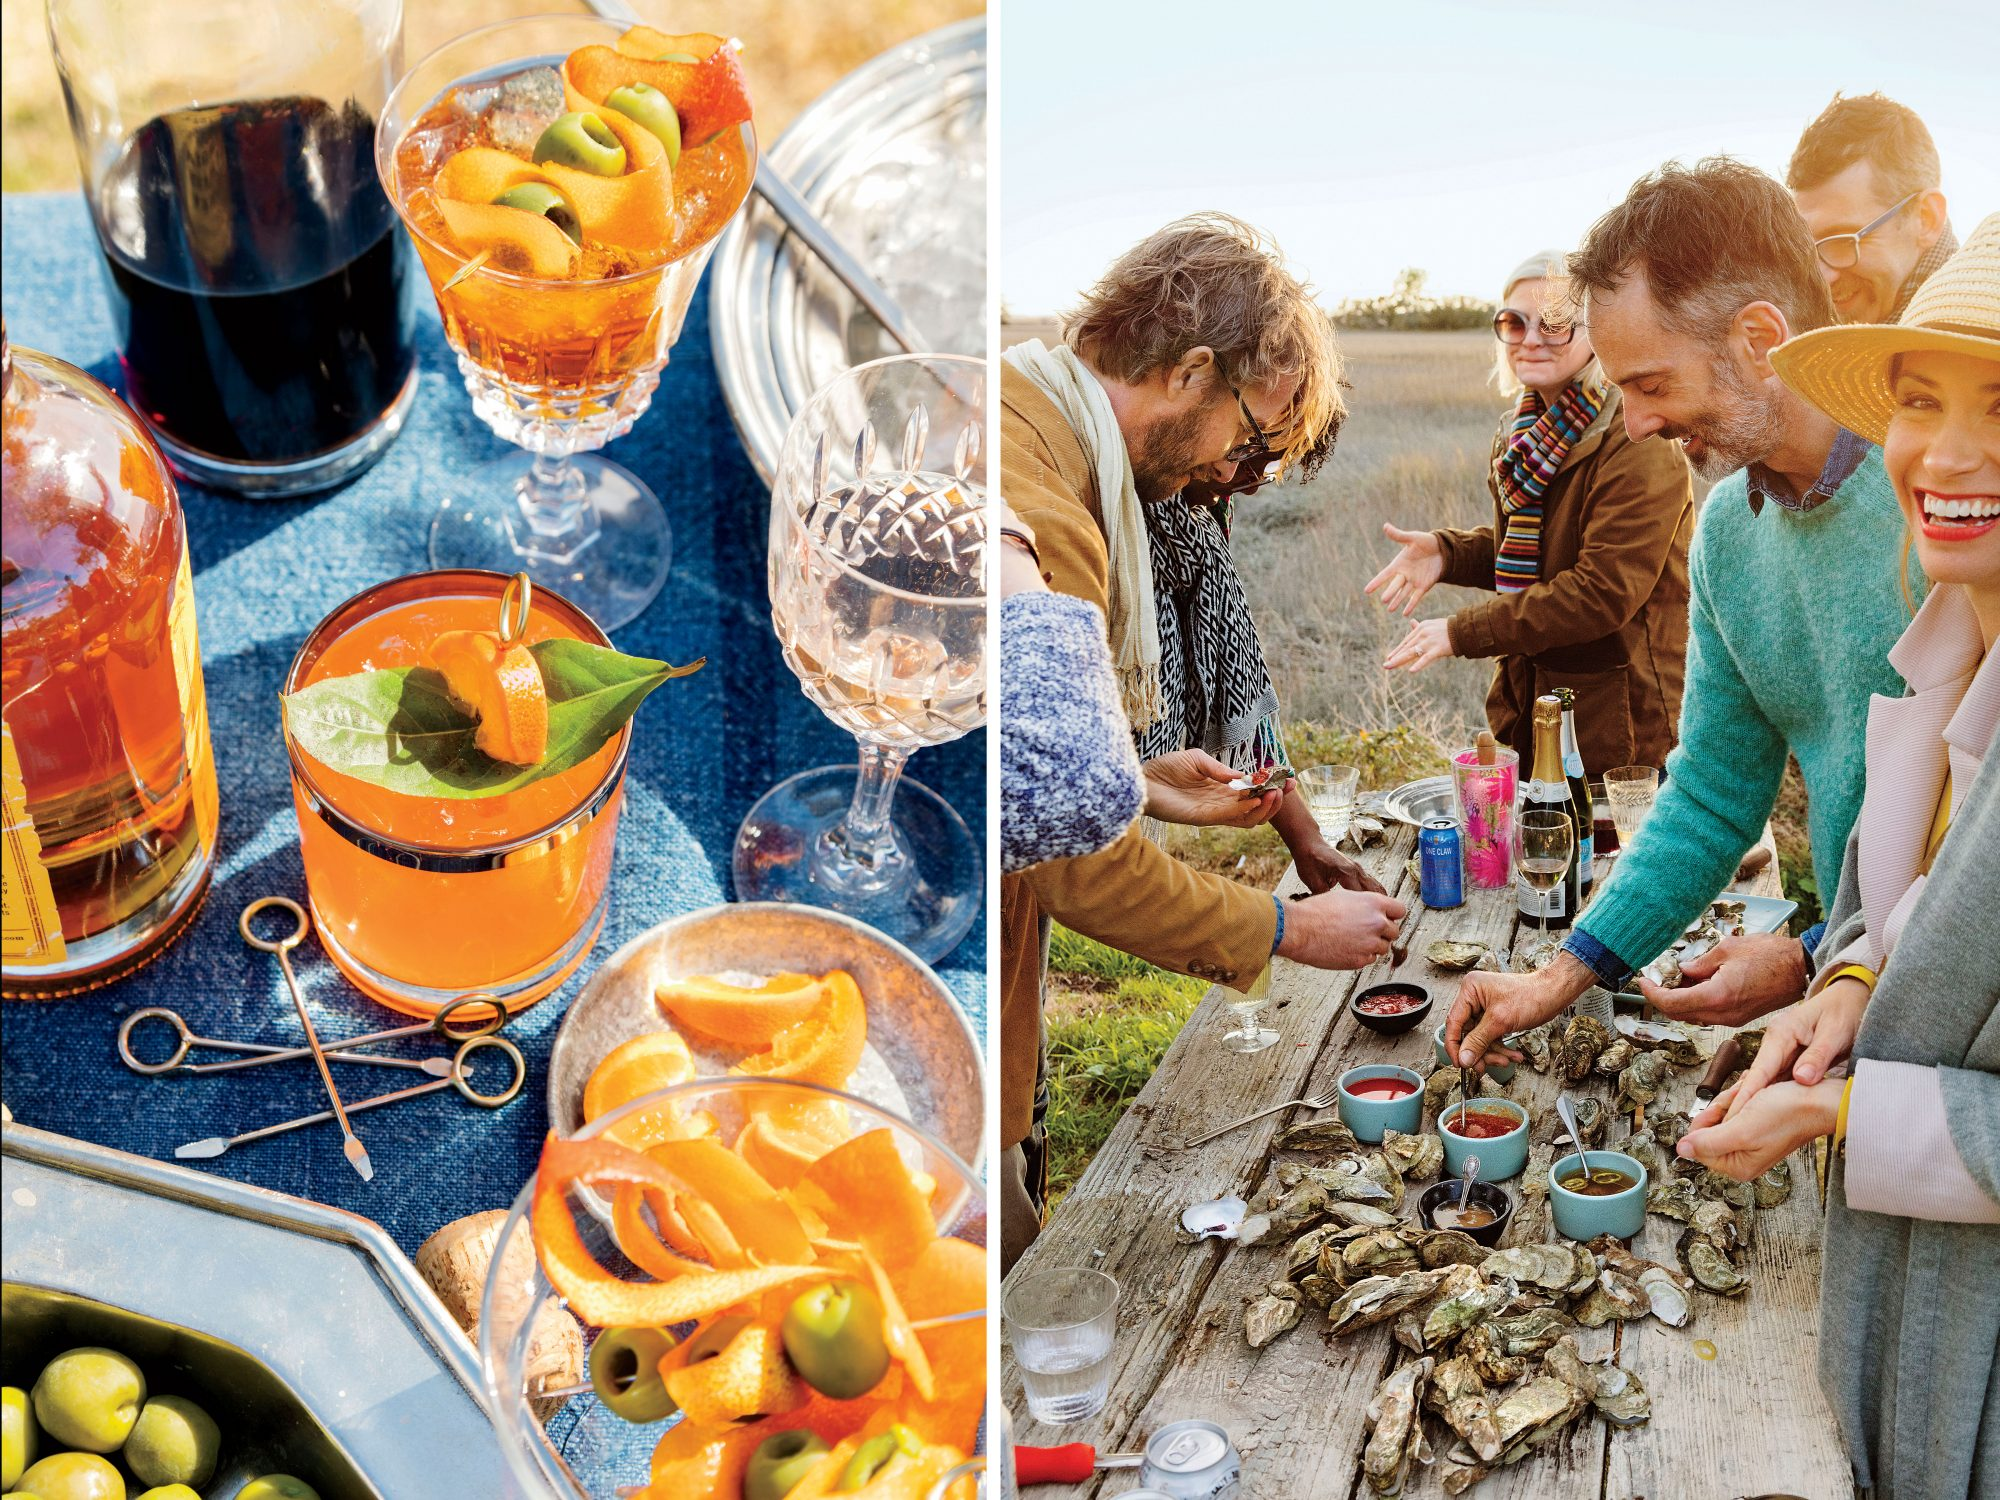 Steven Satterfield Oyster Roast with Friends Off Tybee Island, GA Whiskey Sour and Oyster Shucking